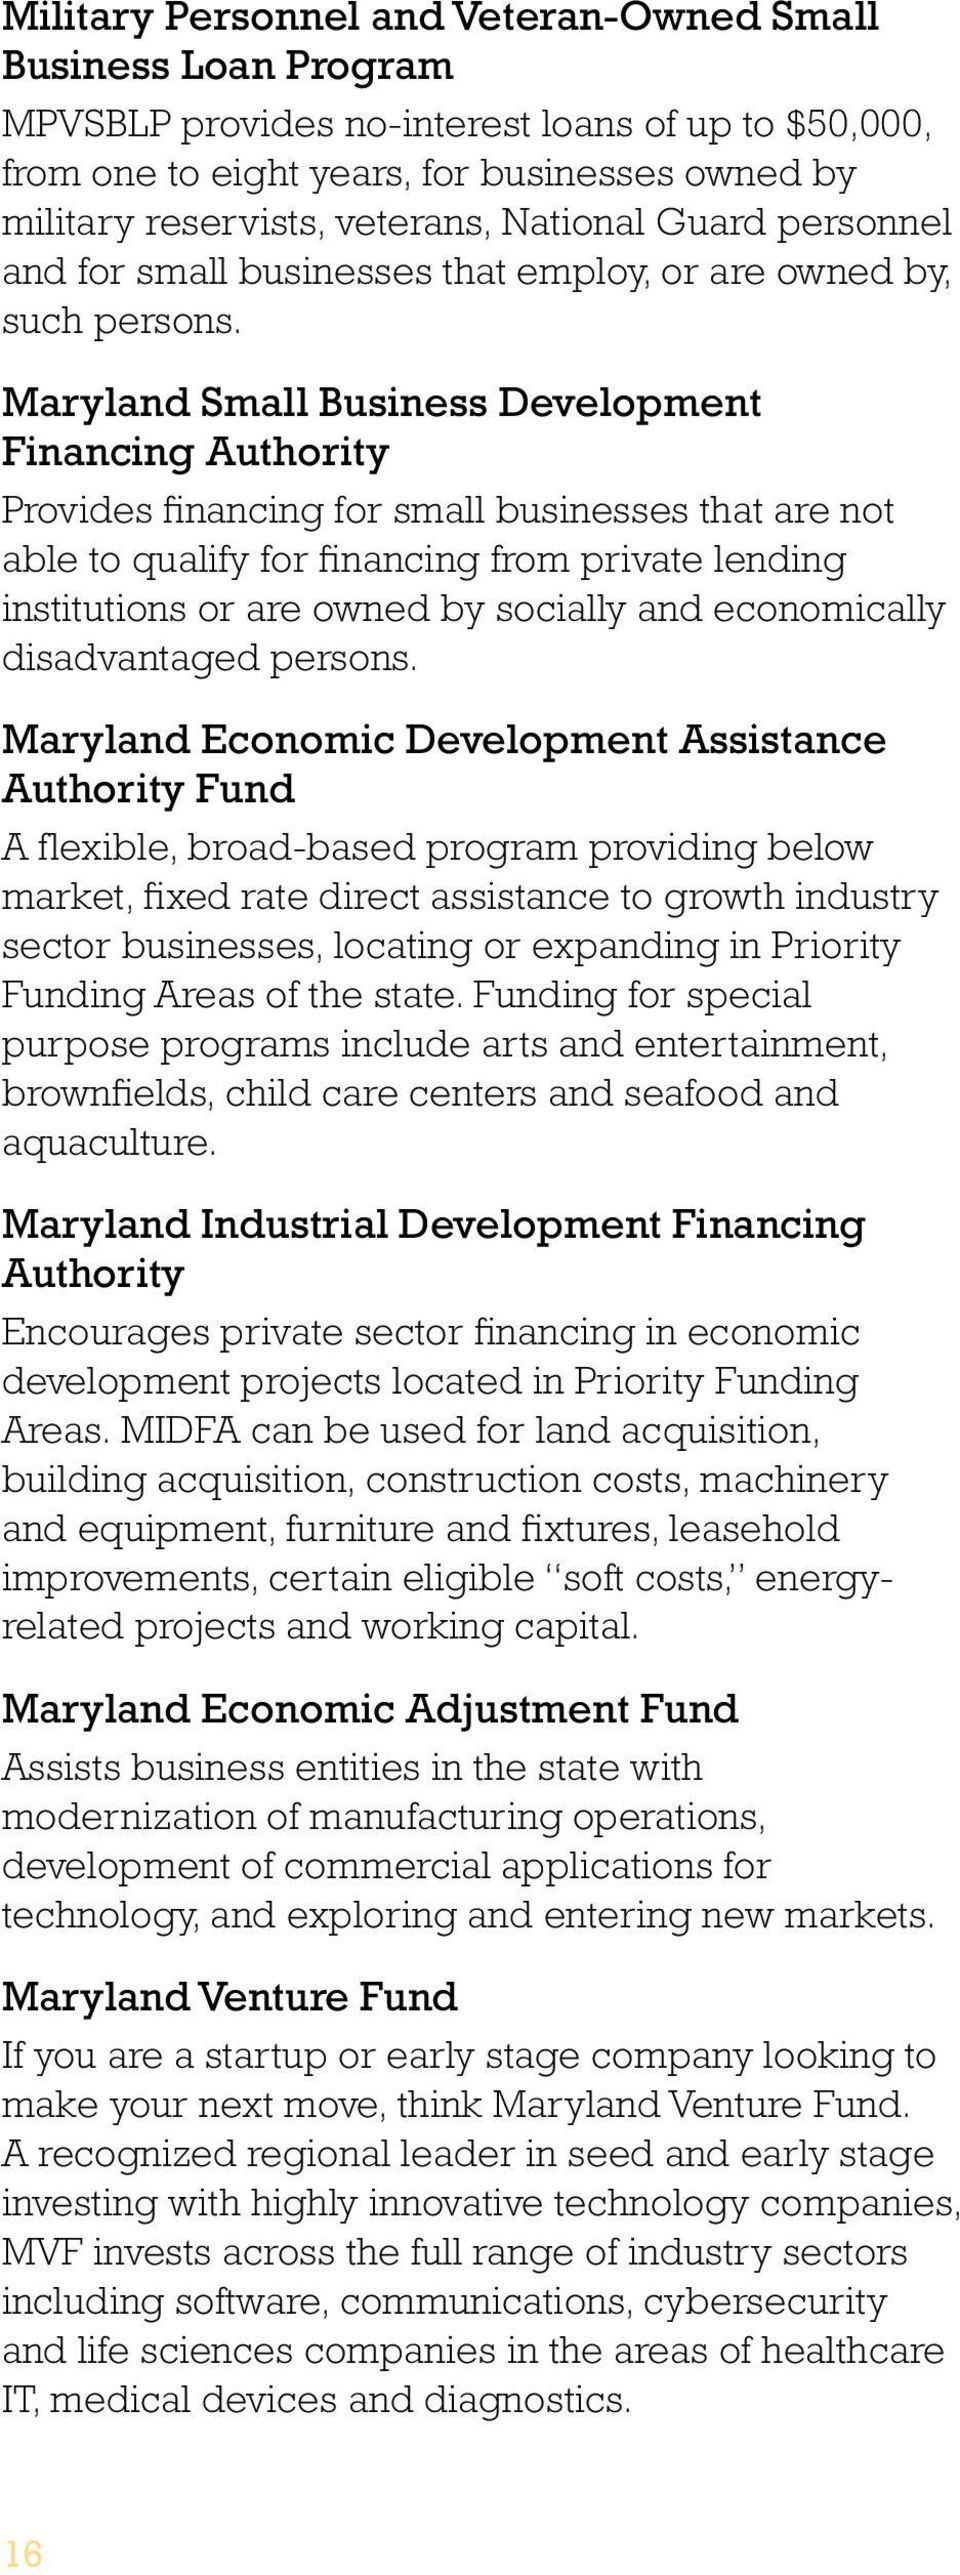 Maryland Small Business Development Financing Authority Provides financing for small businesses that are not able to qualify for financing from private lending institutions or are owned by socially